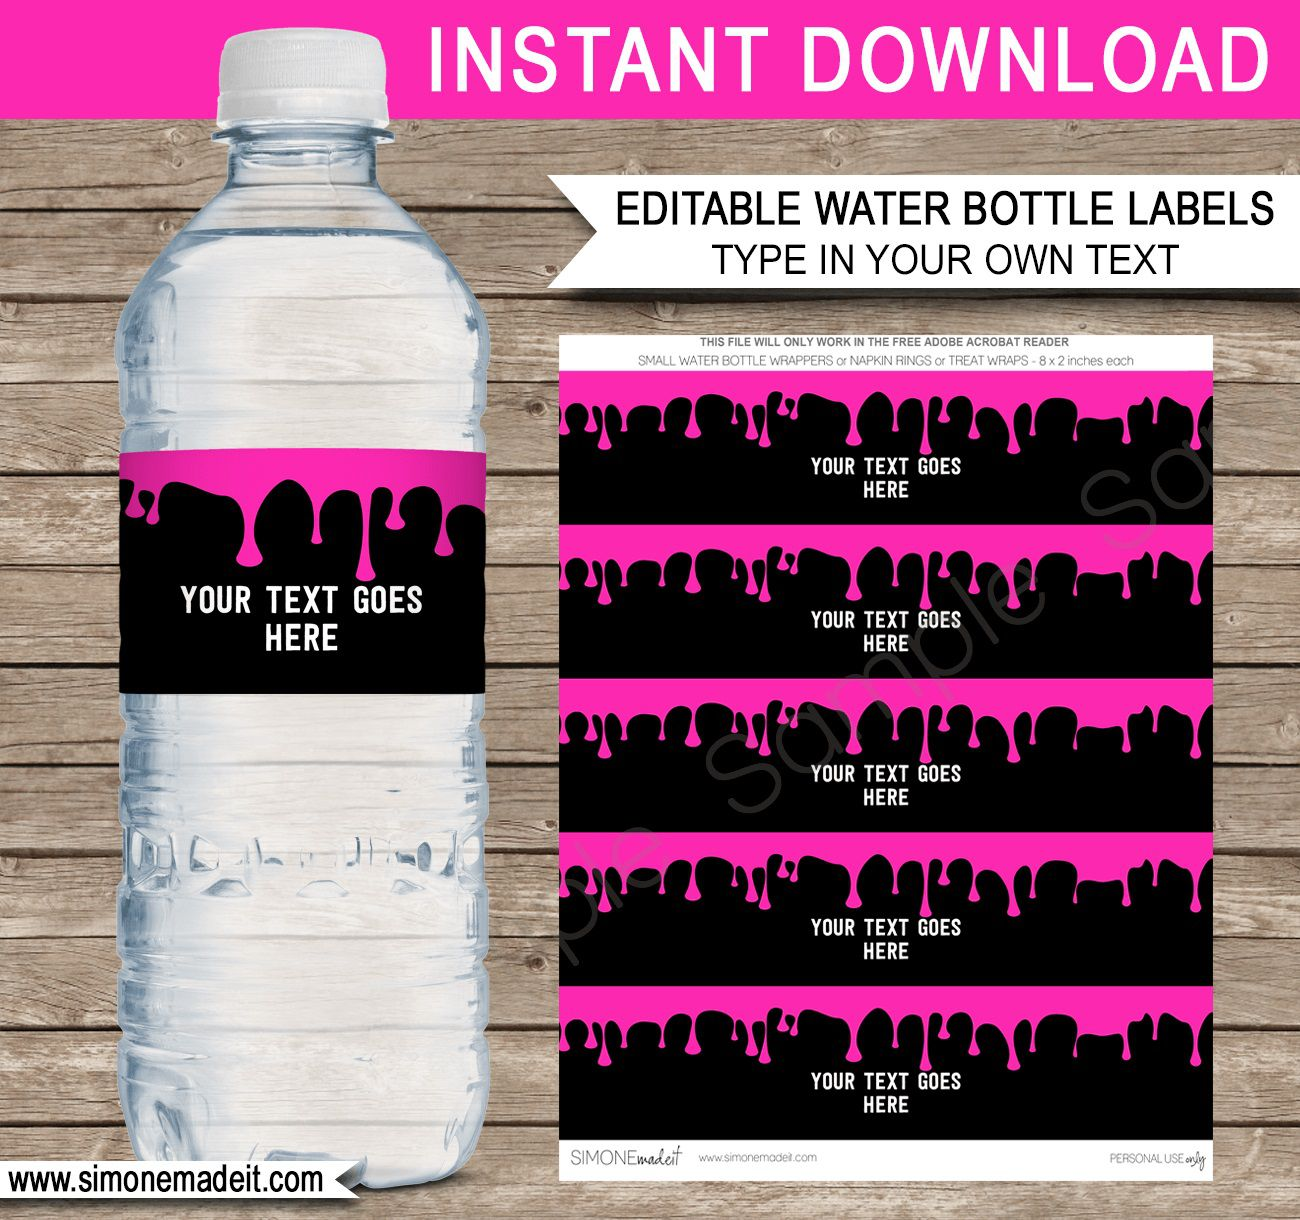 008 Remarkable Water Bottle Label Template Image  Free Photoshop Baby Shower PsdFull